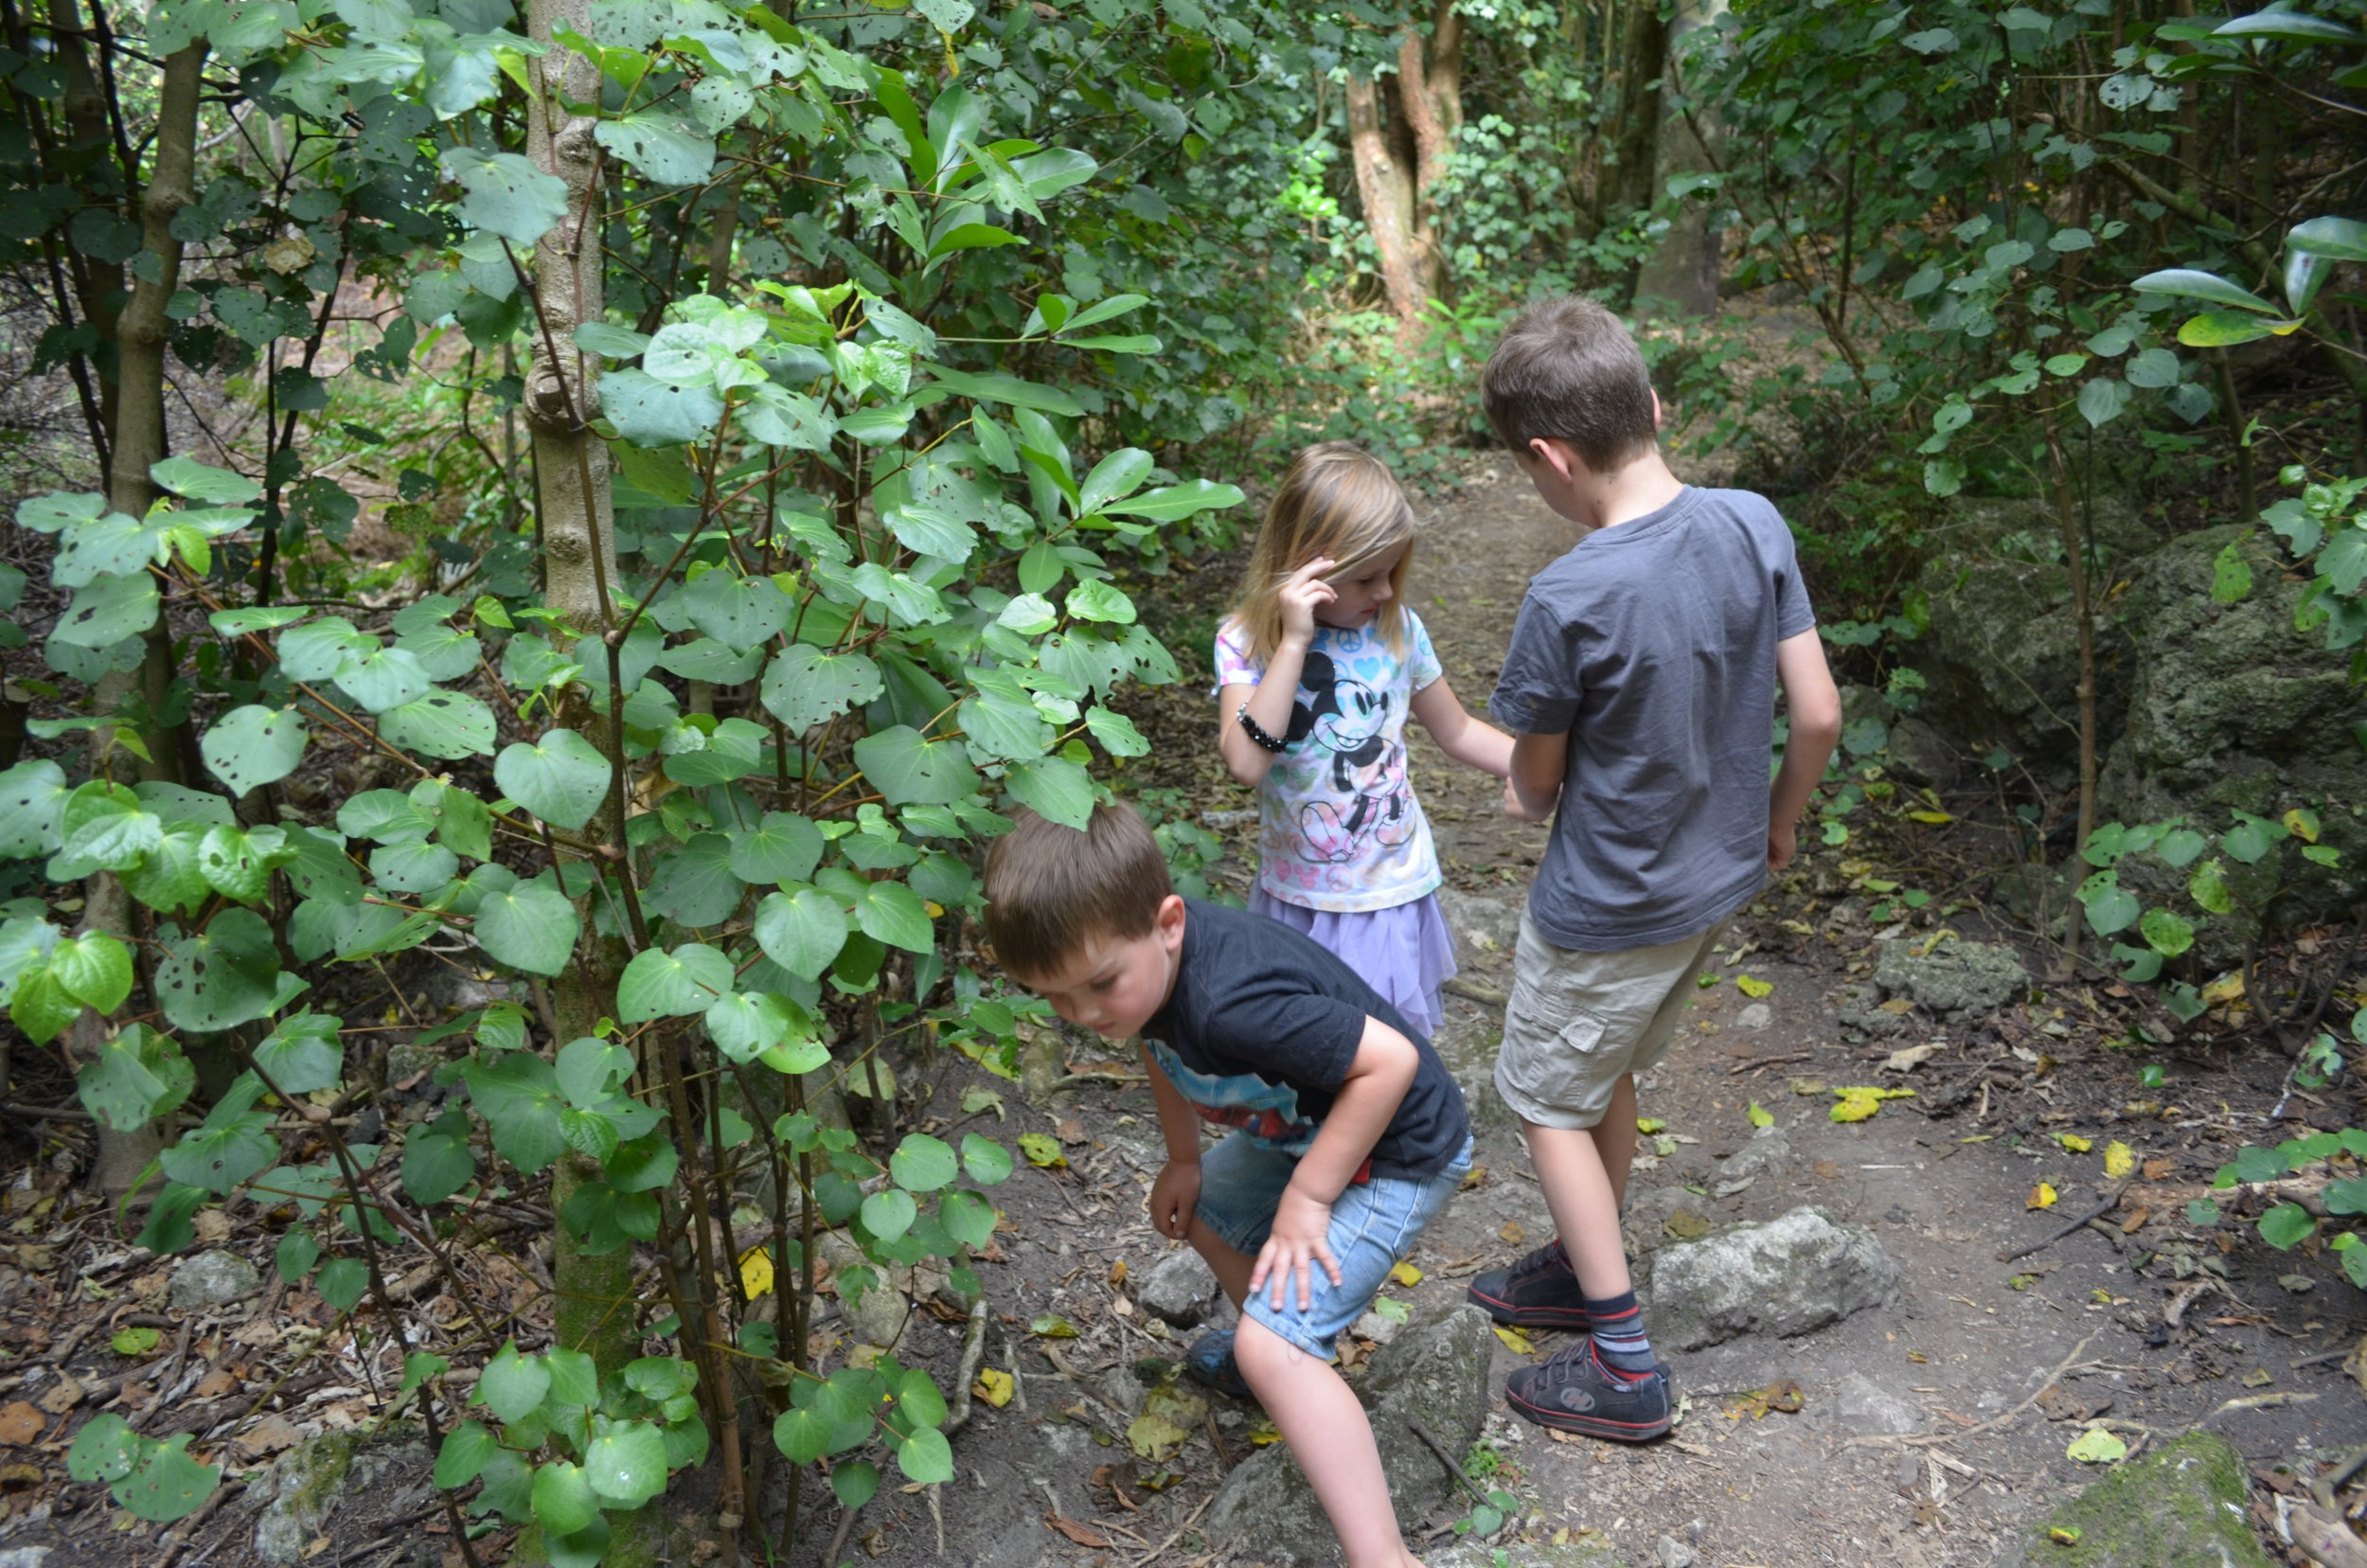 Looking for bugs in the ngahere.